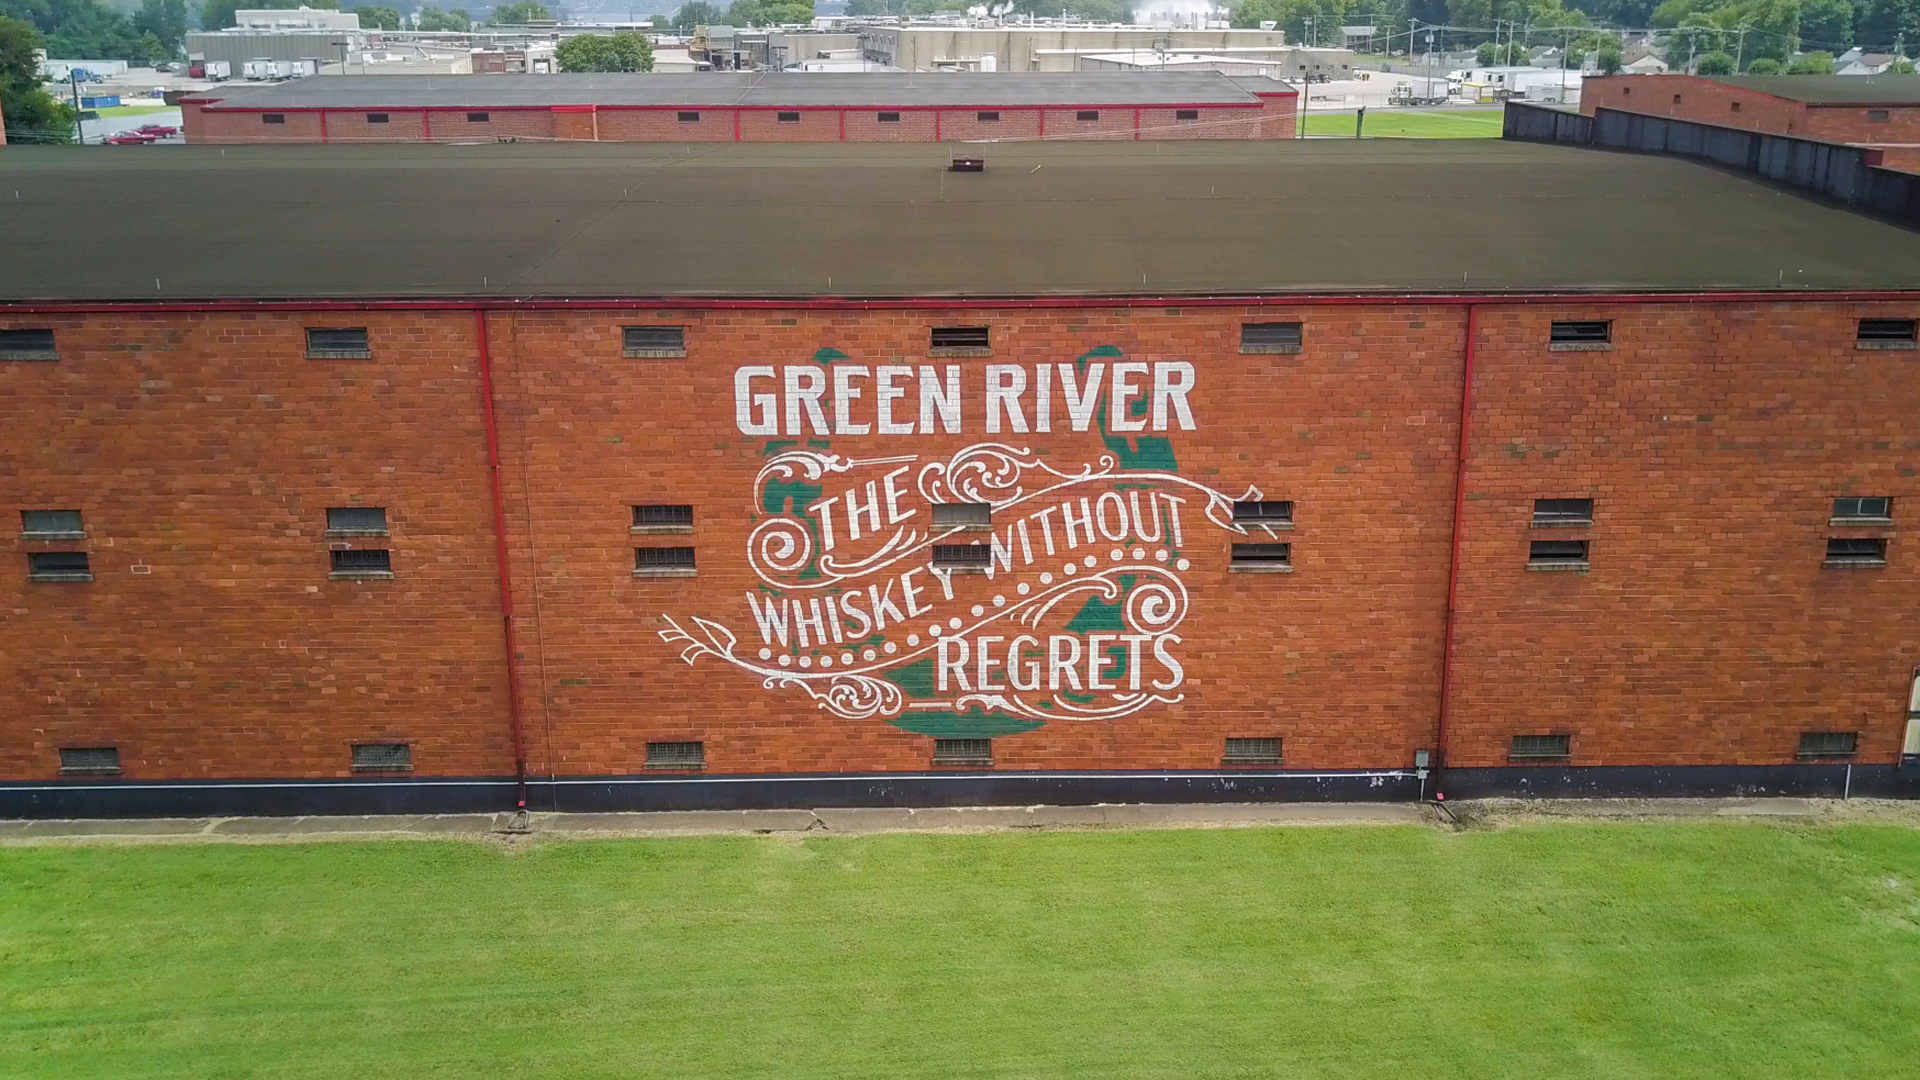 GRDC Mural - Green River Distilling Co. is Revived at Original Home in Owensboro, Kentucky